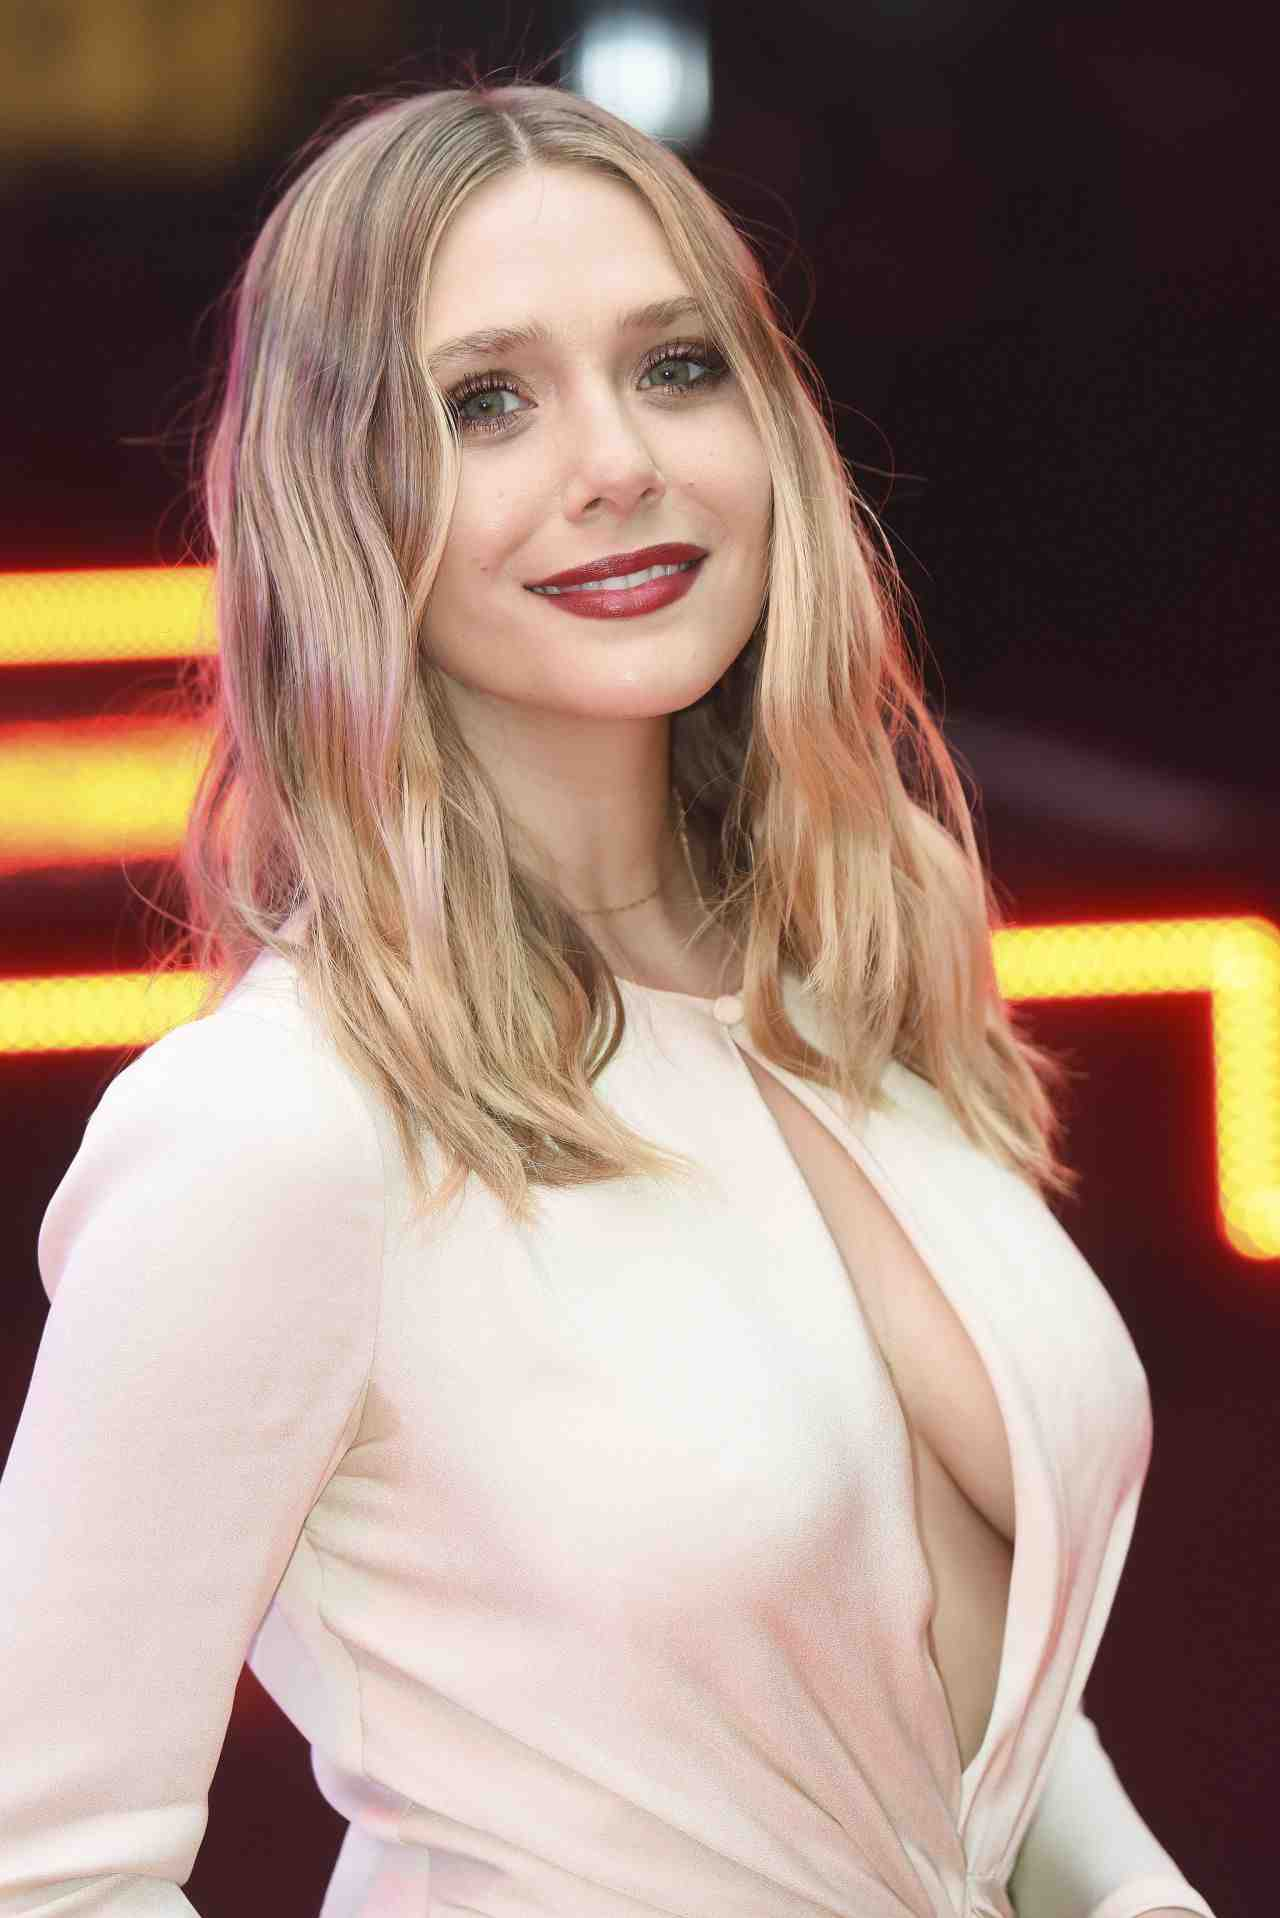 Elizabeth Olsen born February 16, 1989 (age 29)